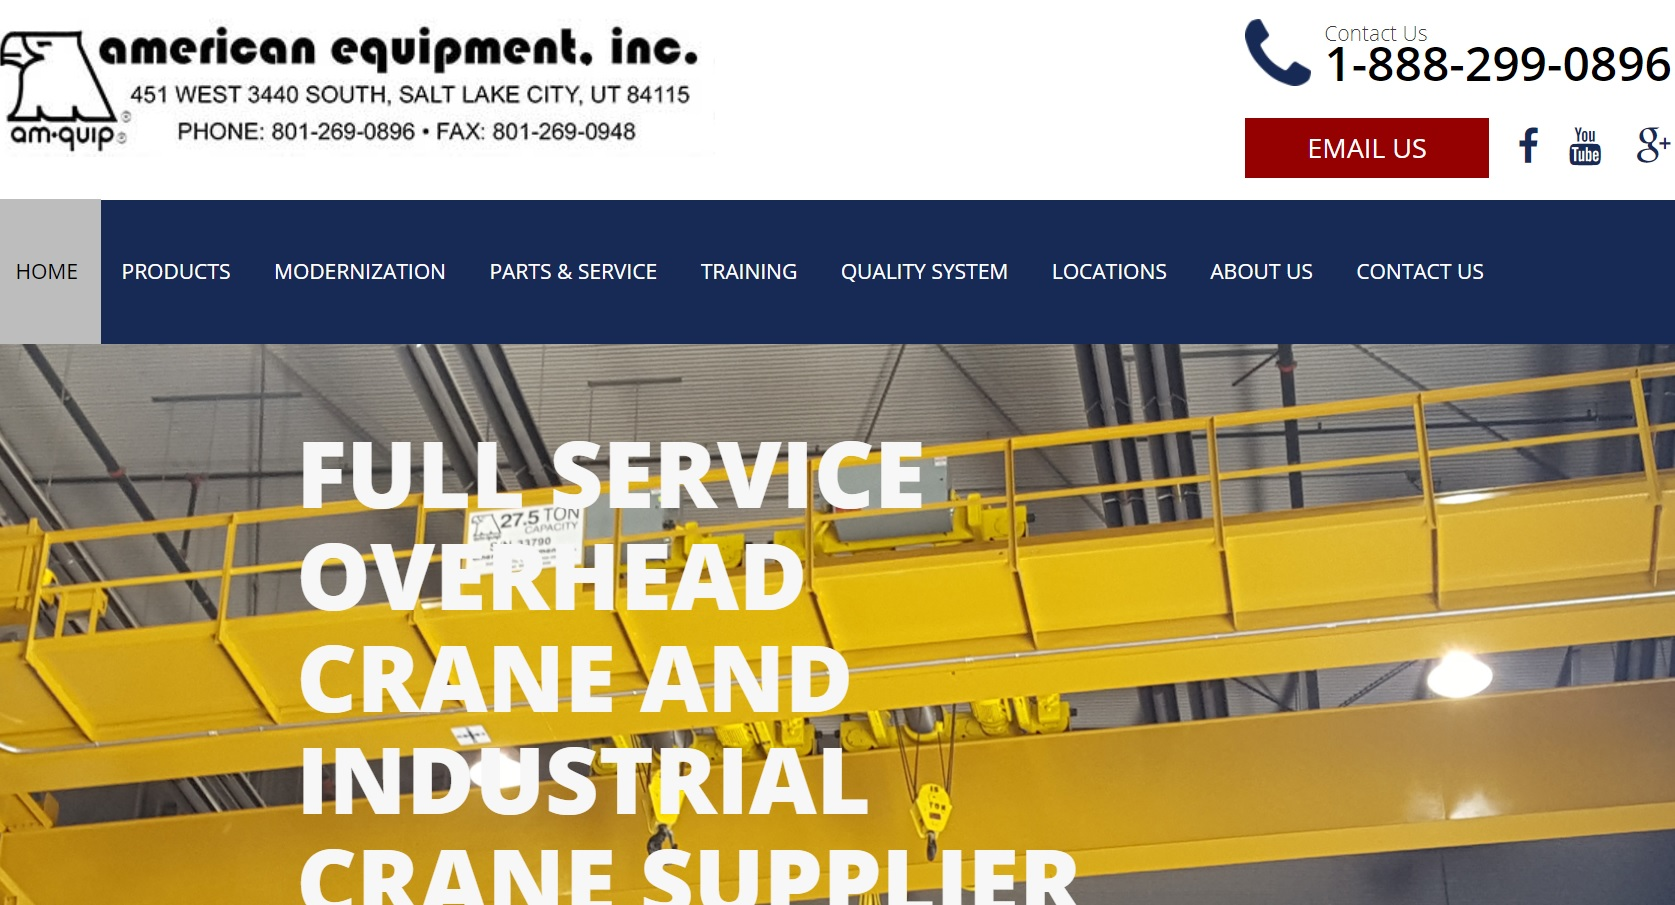 American Equipment, Inc.